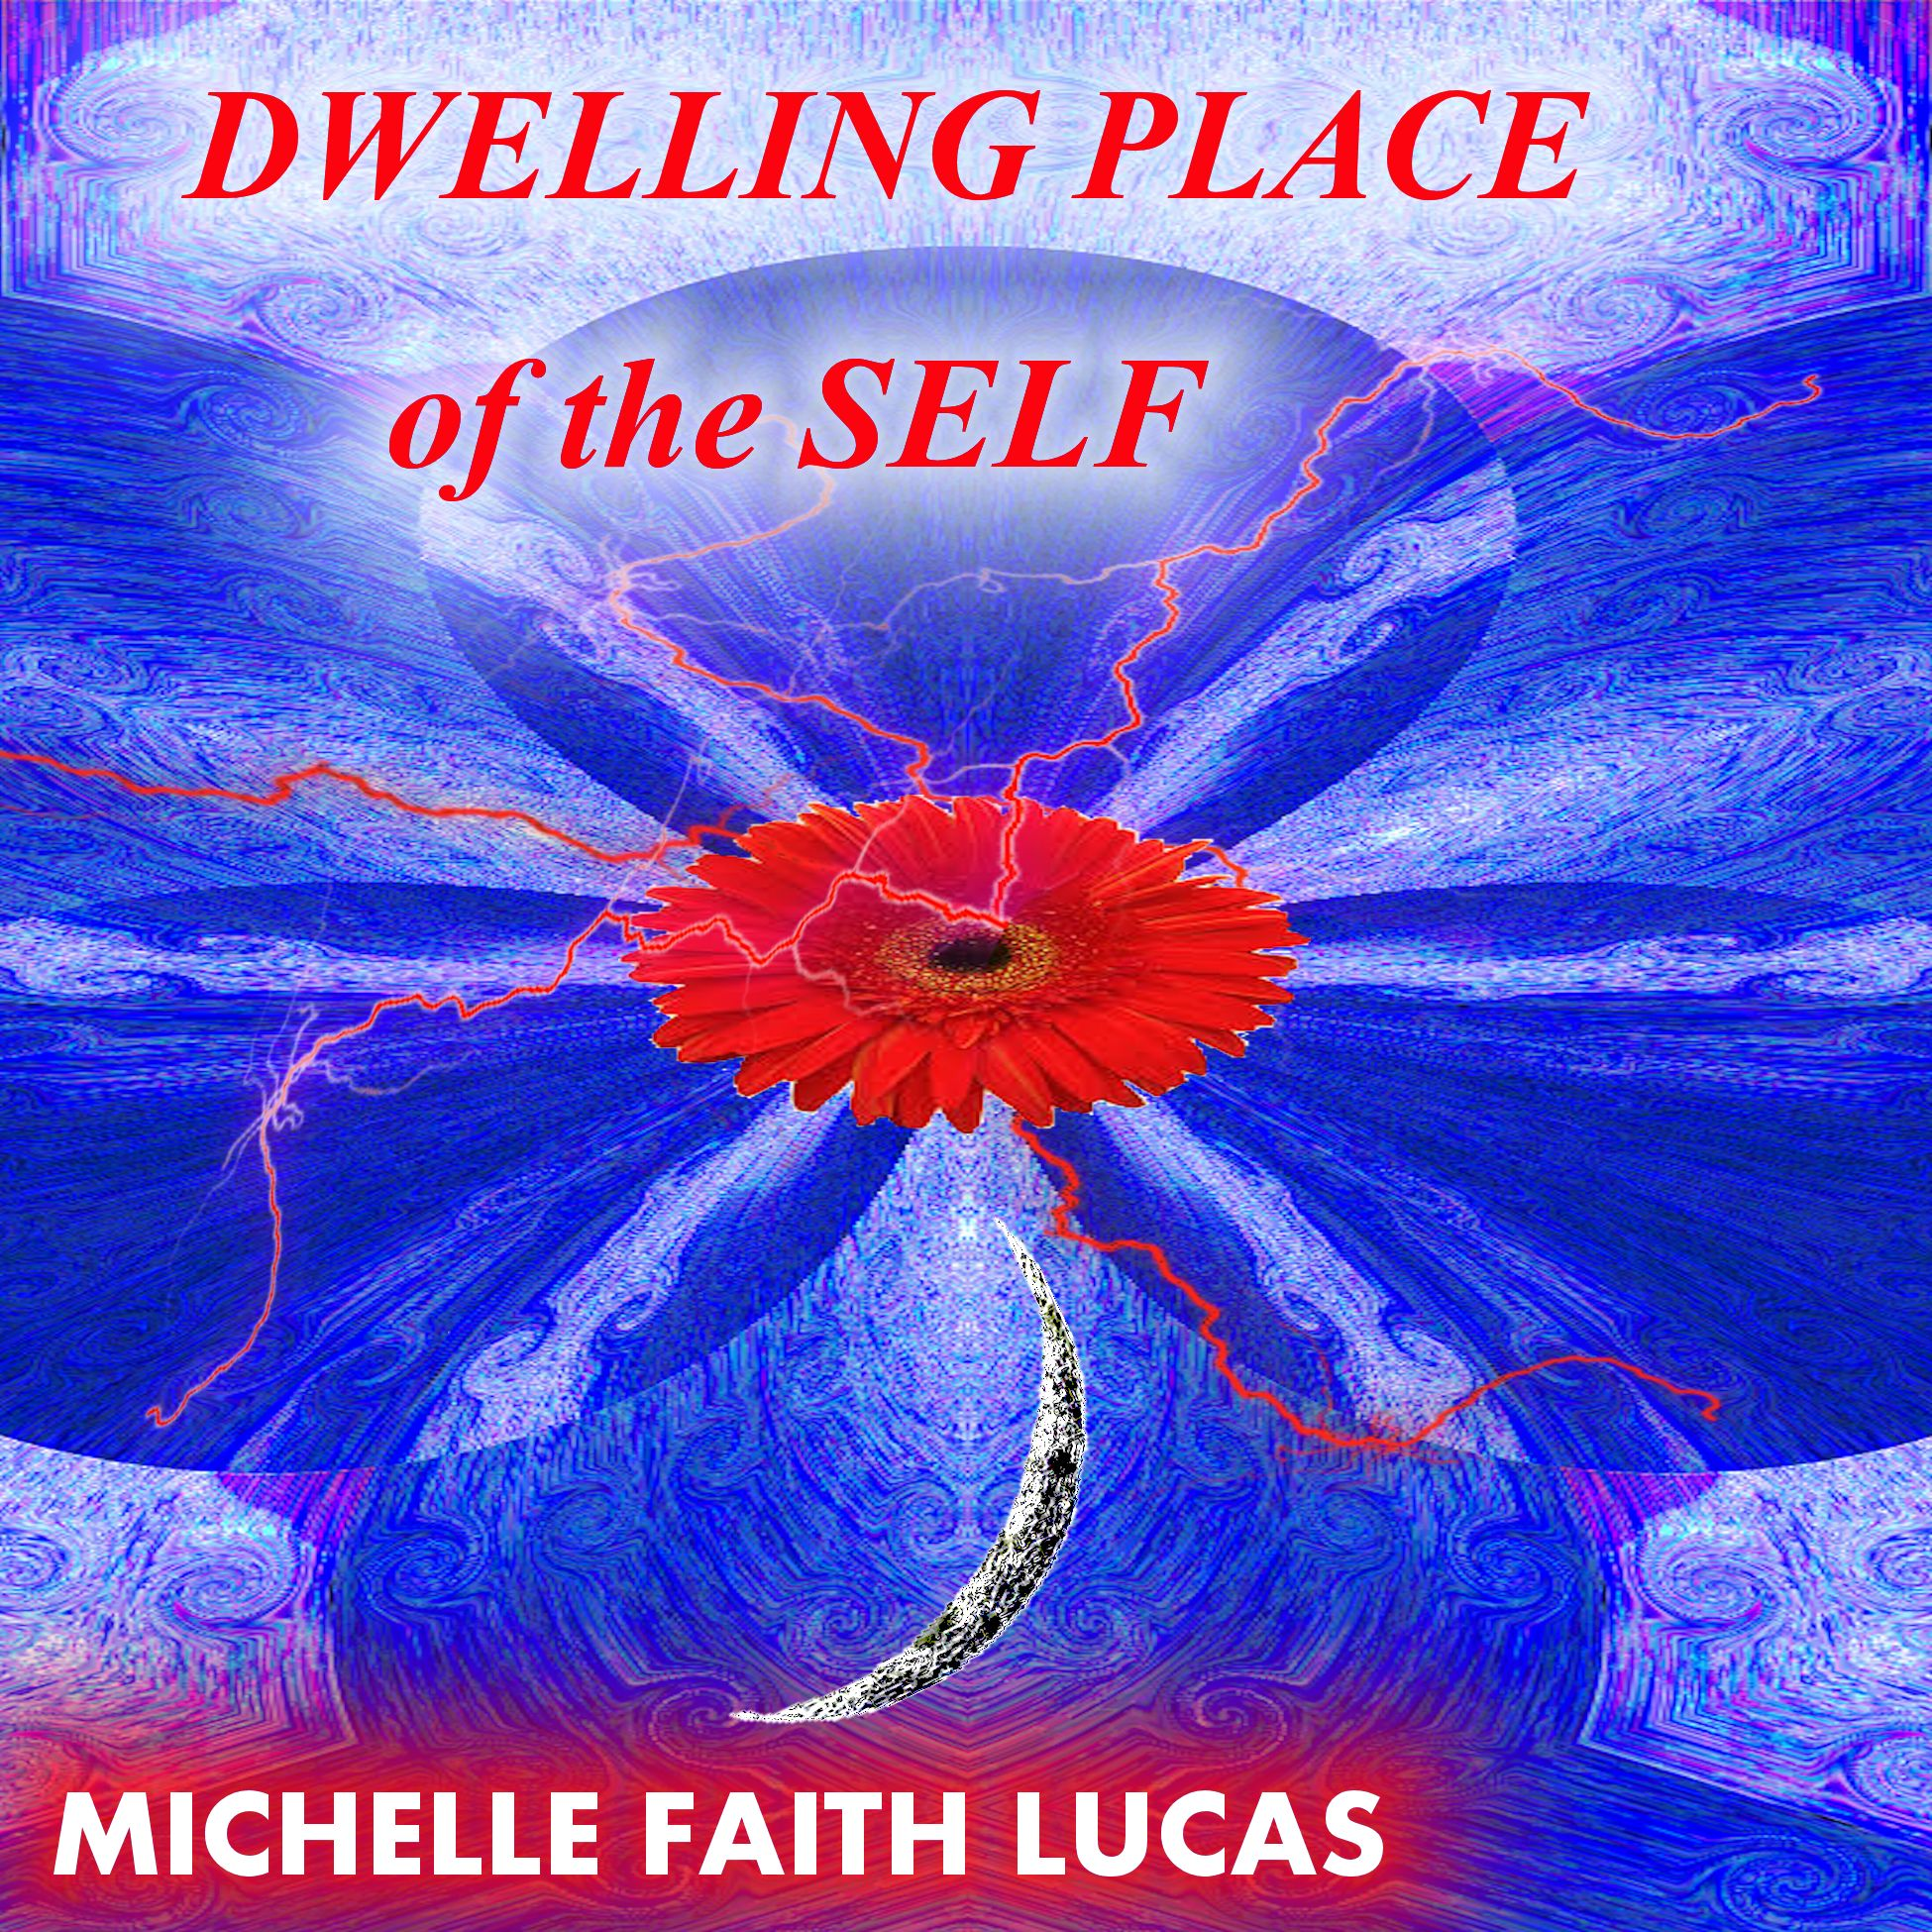 Dwelling Place of the Self